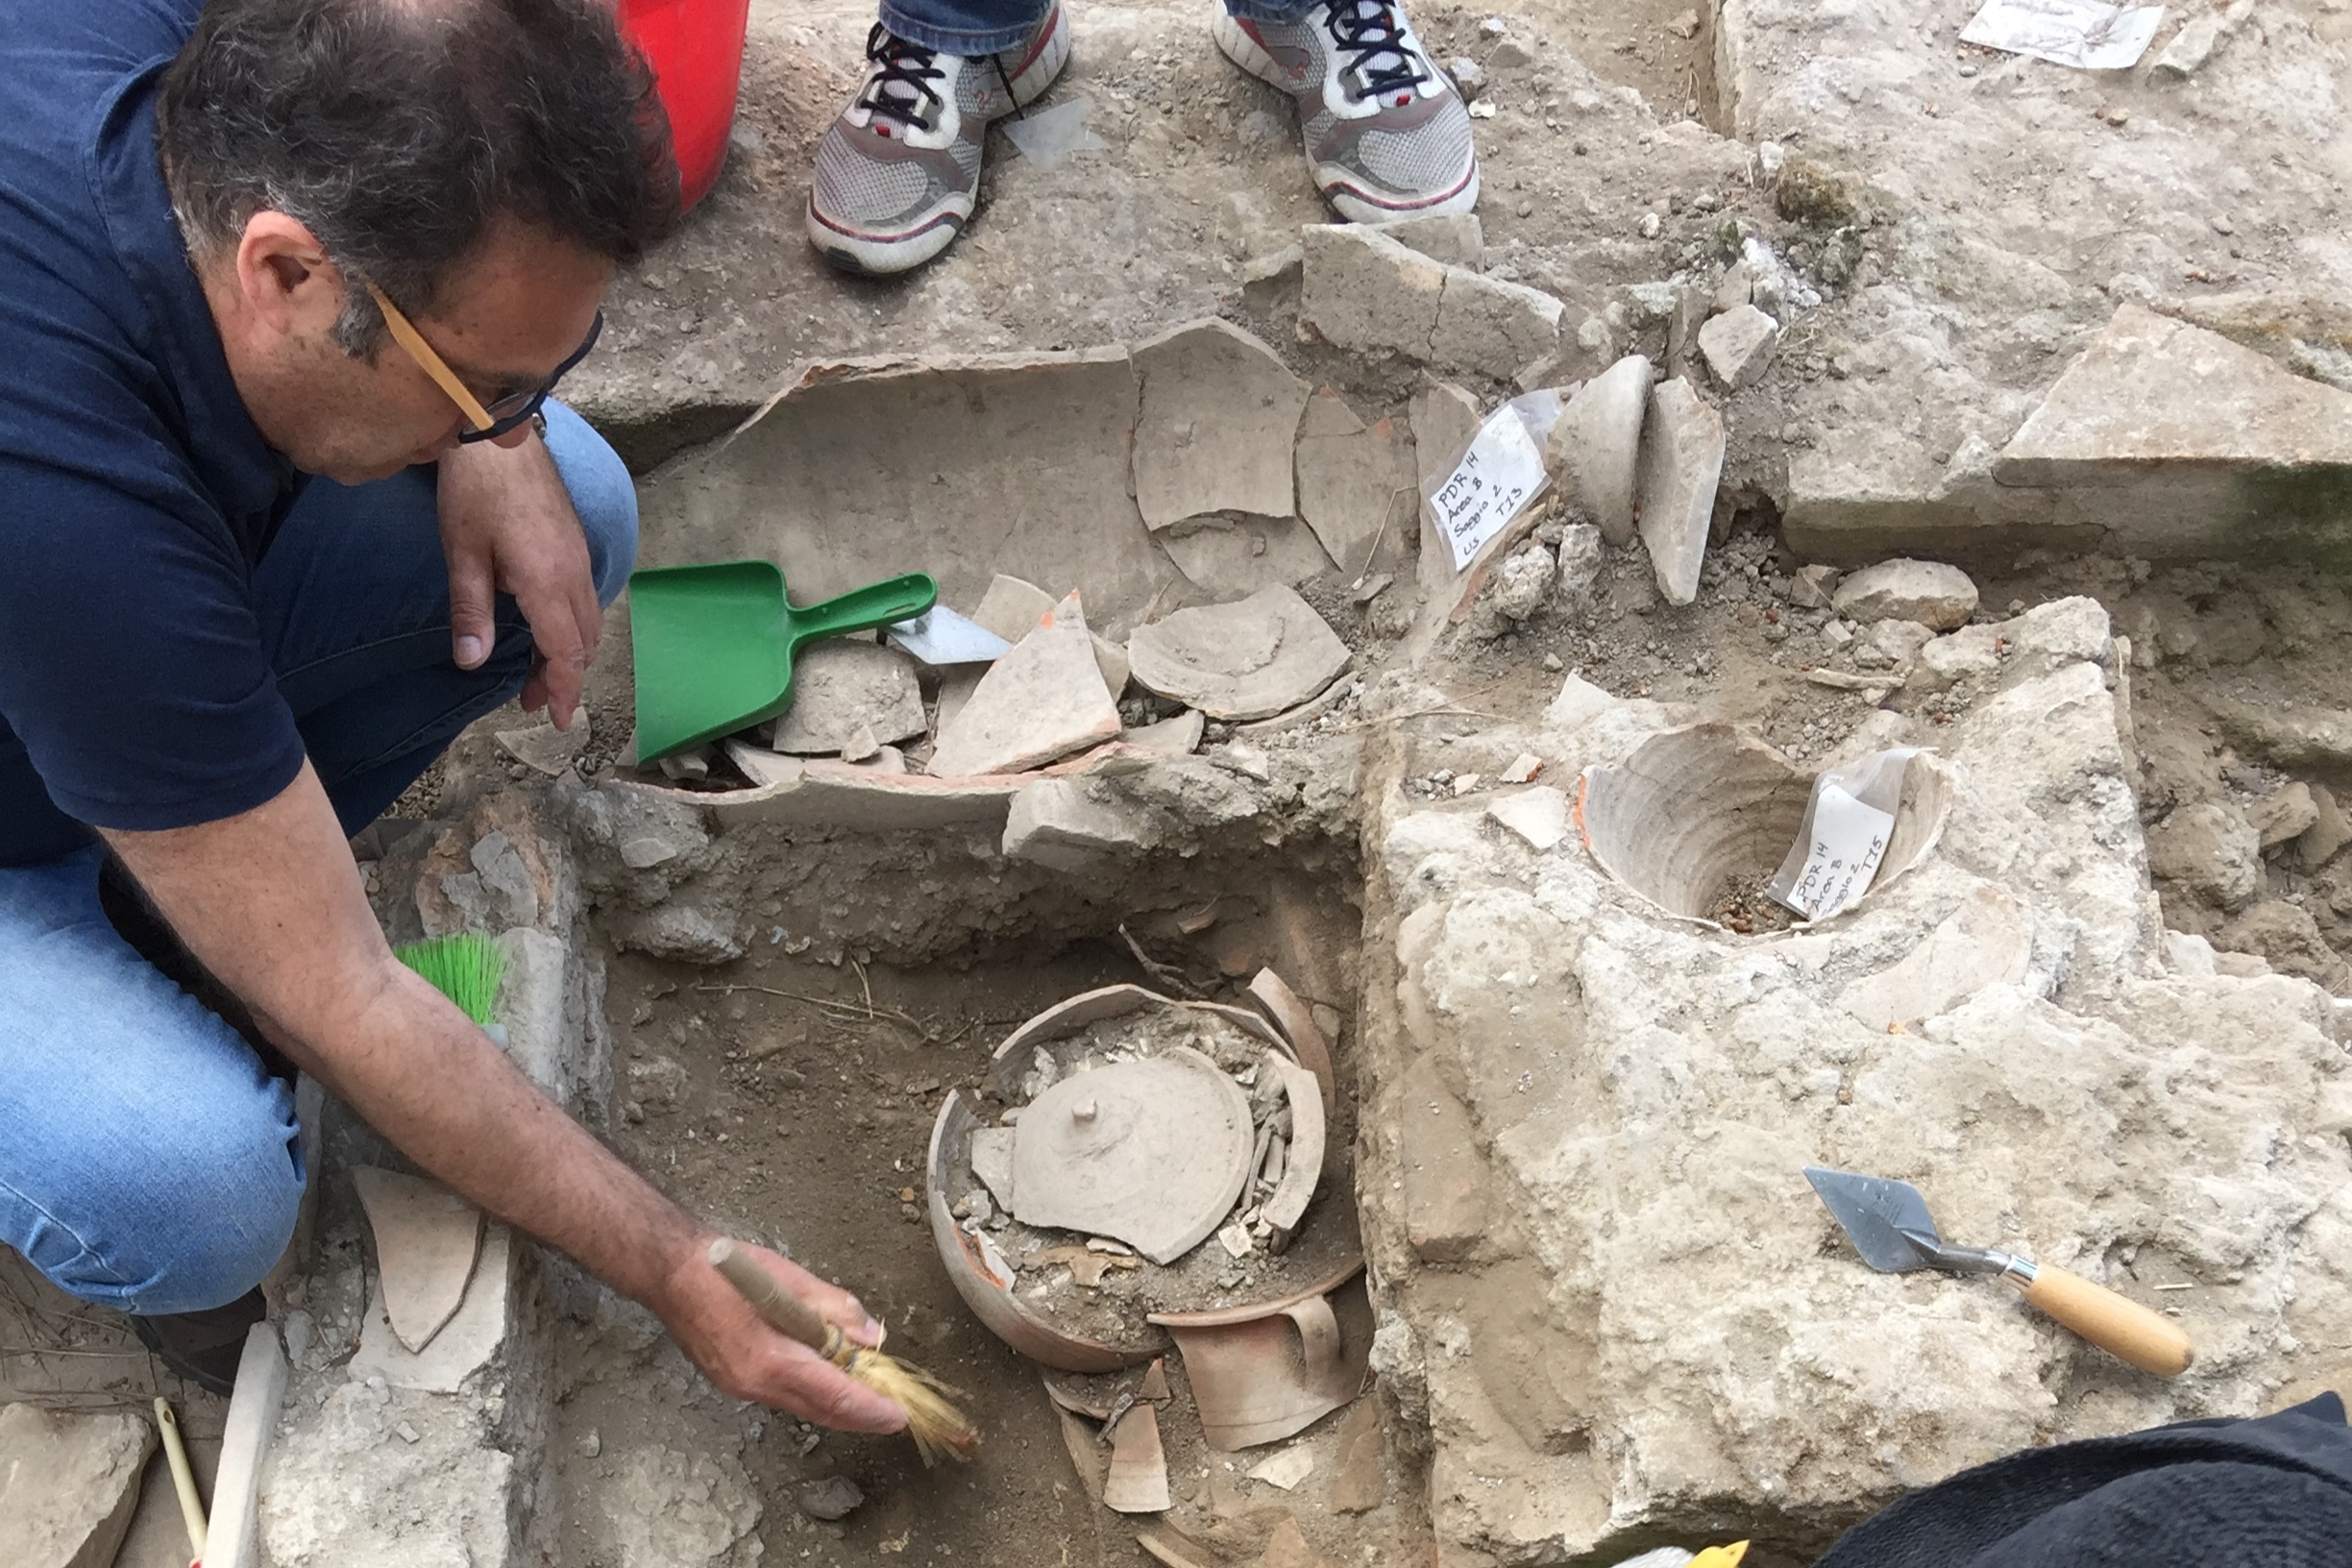 An excavation is a collaborative team effort as history. Arya works side by side with trained specialists and experts in their field such as forsensicsanthropologist Pier Paolo Petroni (shown) who helps put the pieces of history together. Courtesy of Darius Arya.